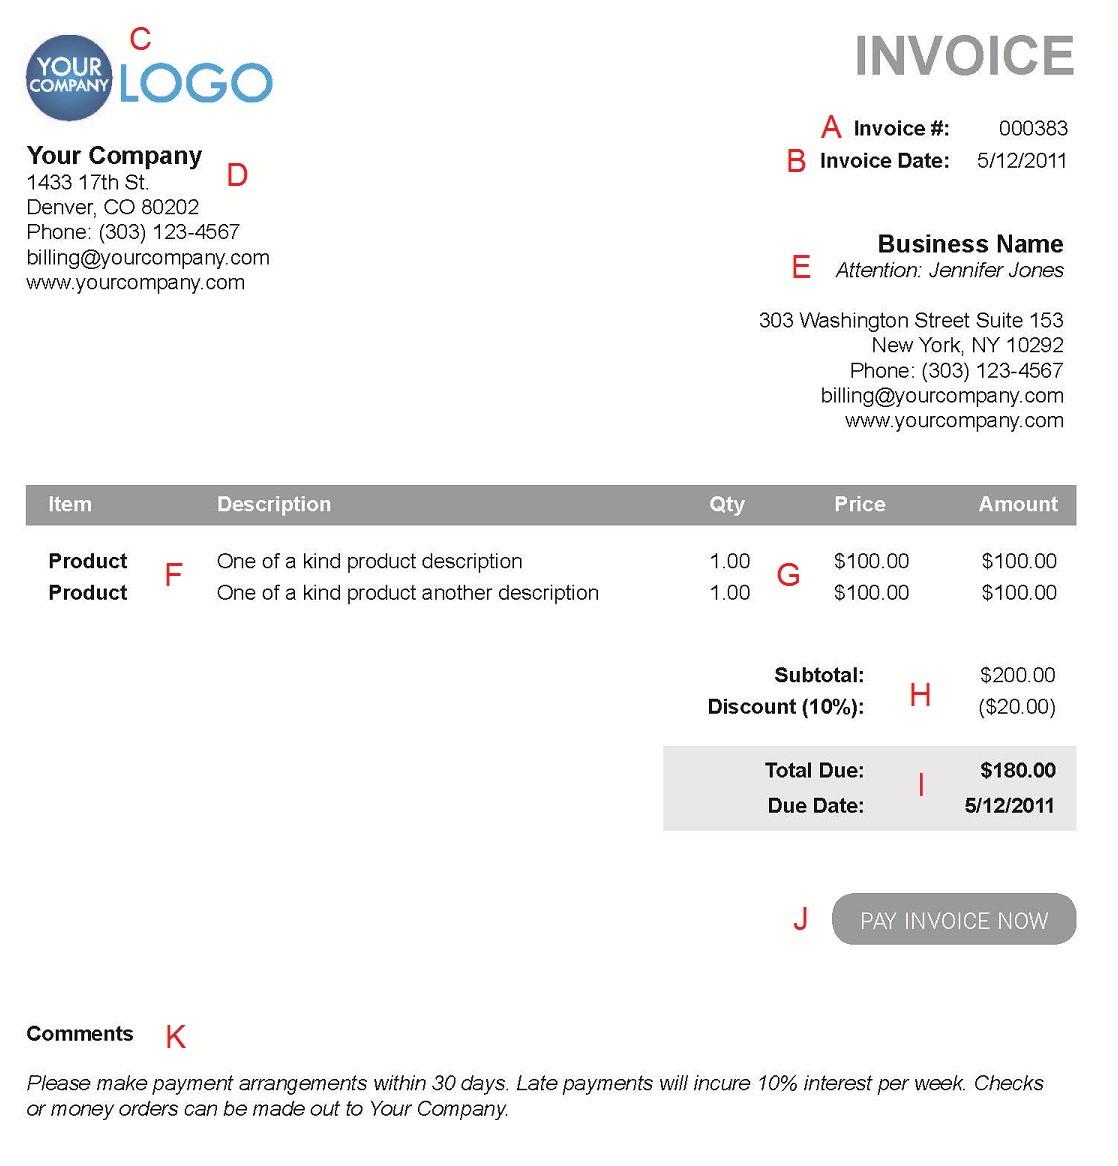 Ultrablogus  Splendid The  Different Sections Of An Electronic Payment Invoice With Fair A  With Amazing Recipient Created Tax Invoice Template Also Microsoft Word Invoice Template  In Addition Invoice Books Printed And Invoice Discounting Explained As Well As Invoice  Additionally Writing Invoice Template From Paysimplecom With Ultrablogus  Fair The  Different Sections Of An Electronic Payment Invoice With Amazing A  And Splendid Recipient Created Tax Invoice Template Also Microsoft Word Invoice Template  In Addition Invoice Books Printed From Paysimplecom